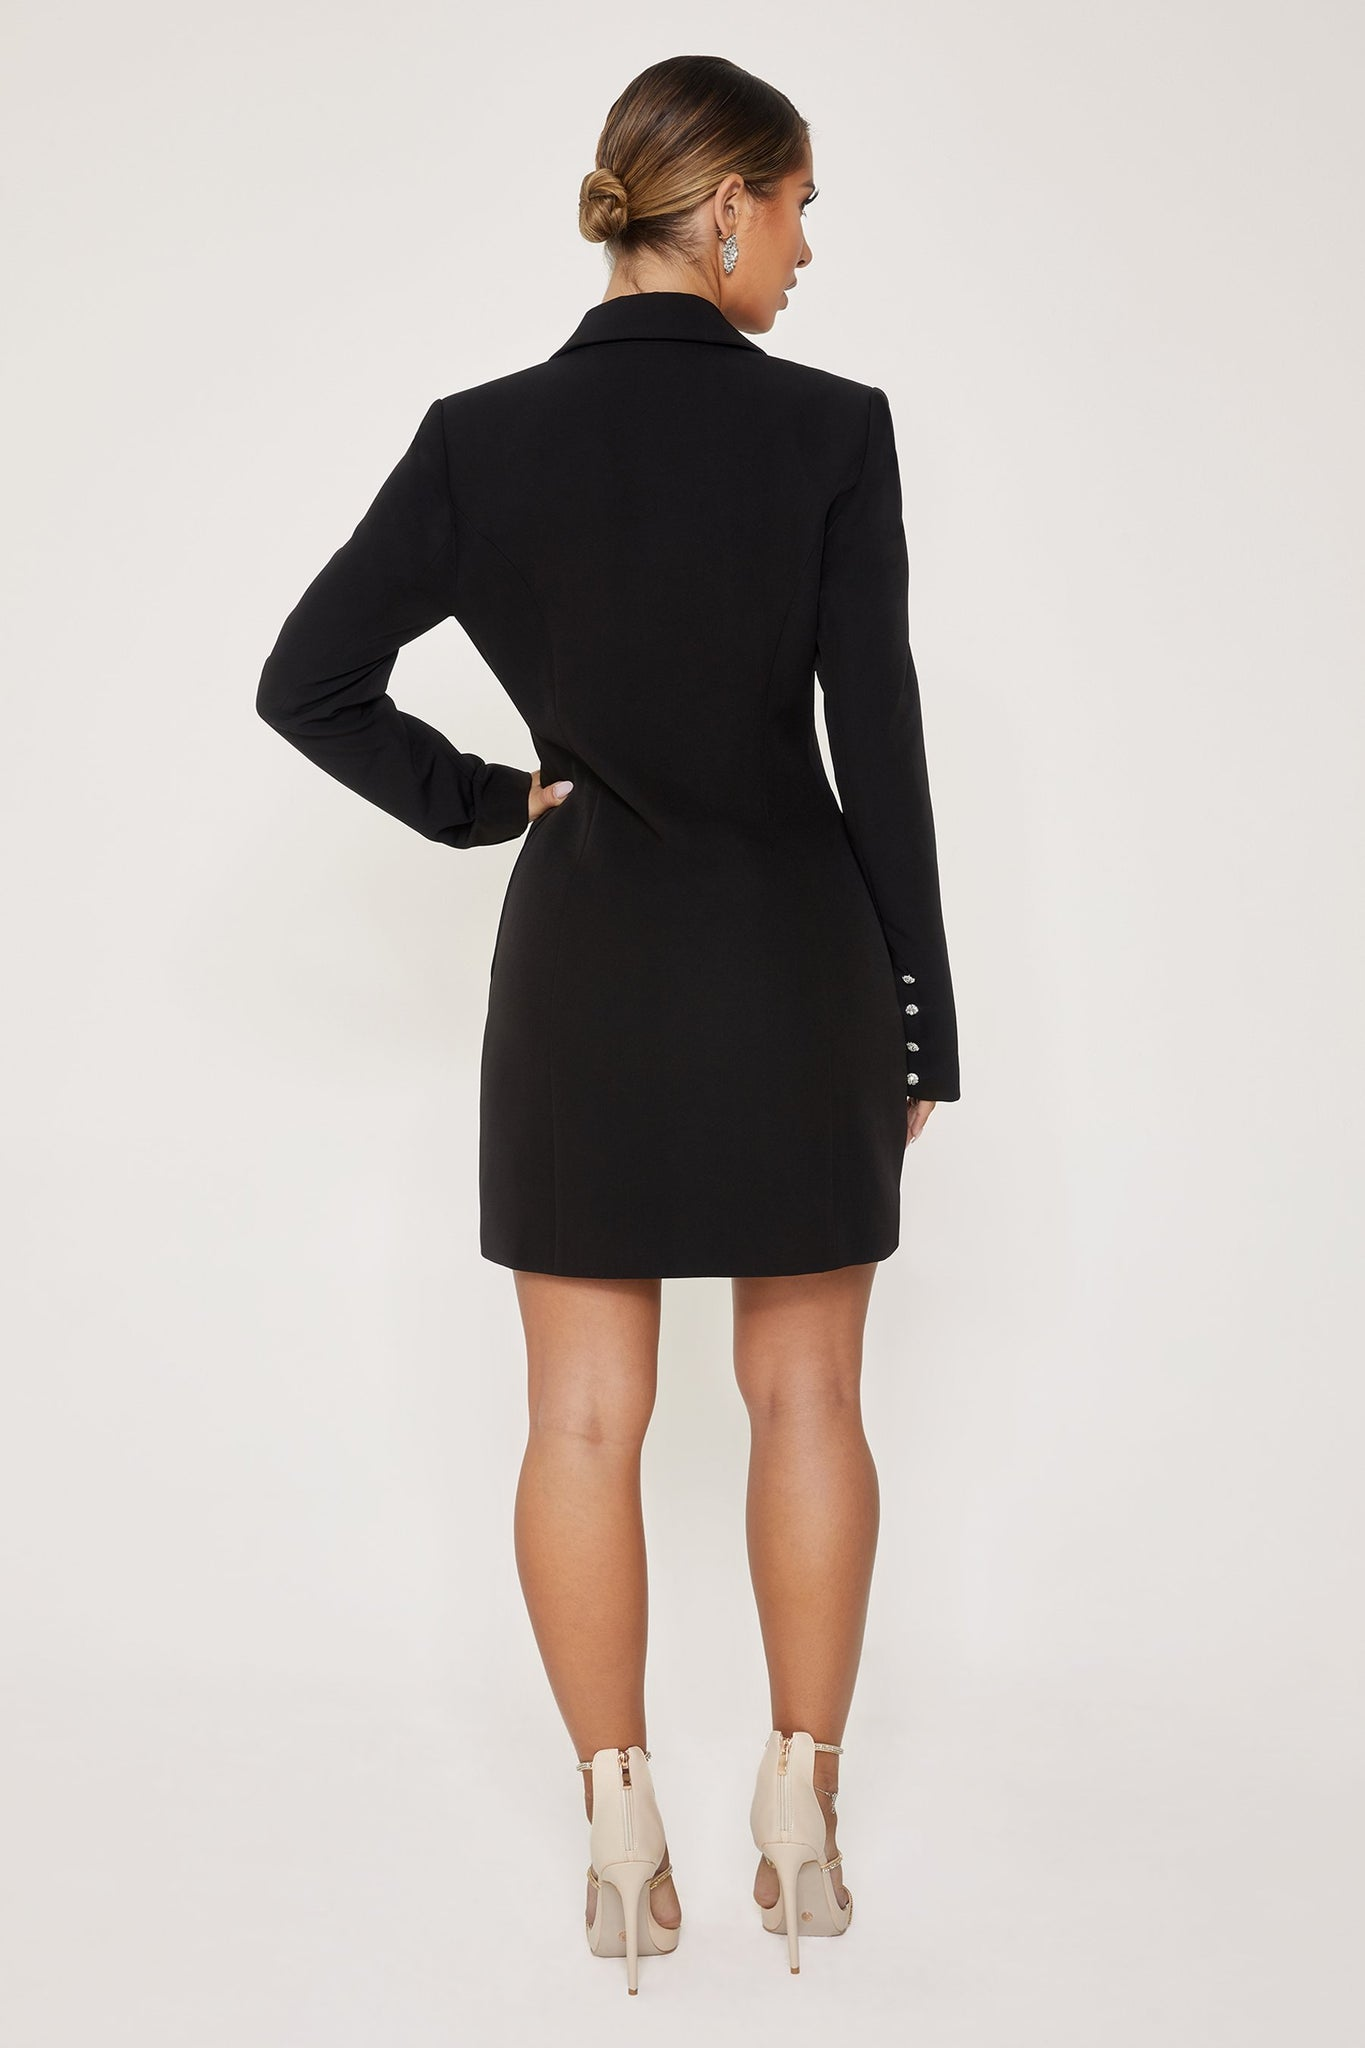 Rebekah Contrast Lapel Double Breasted Blazer Dress - Black - MESHKI